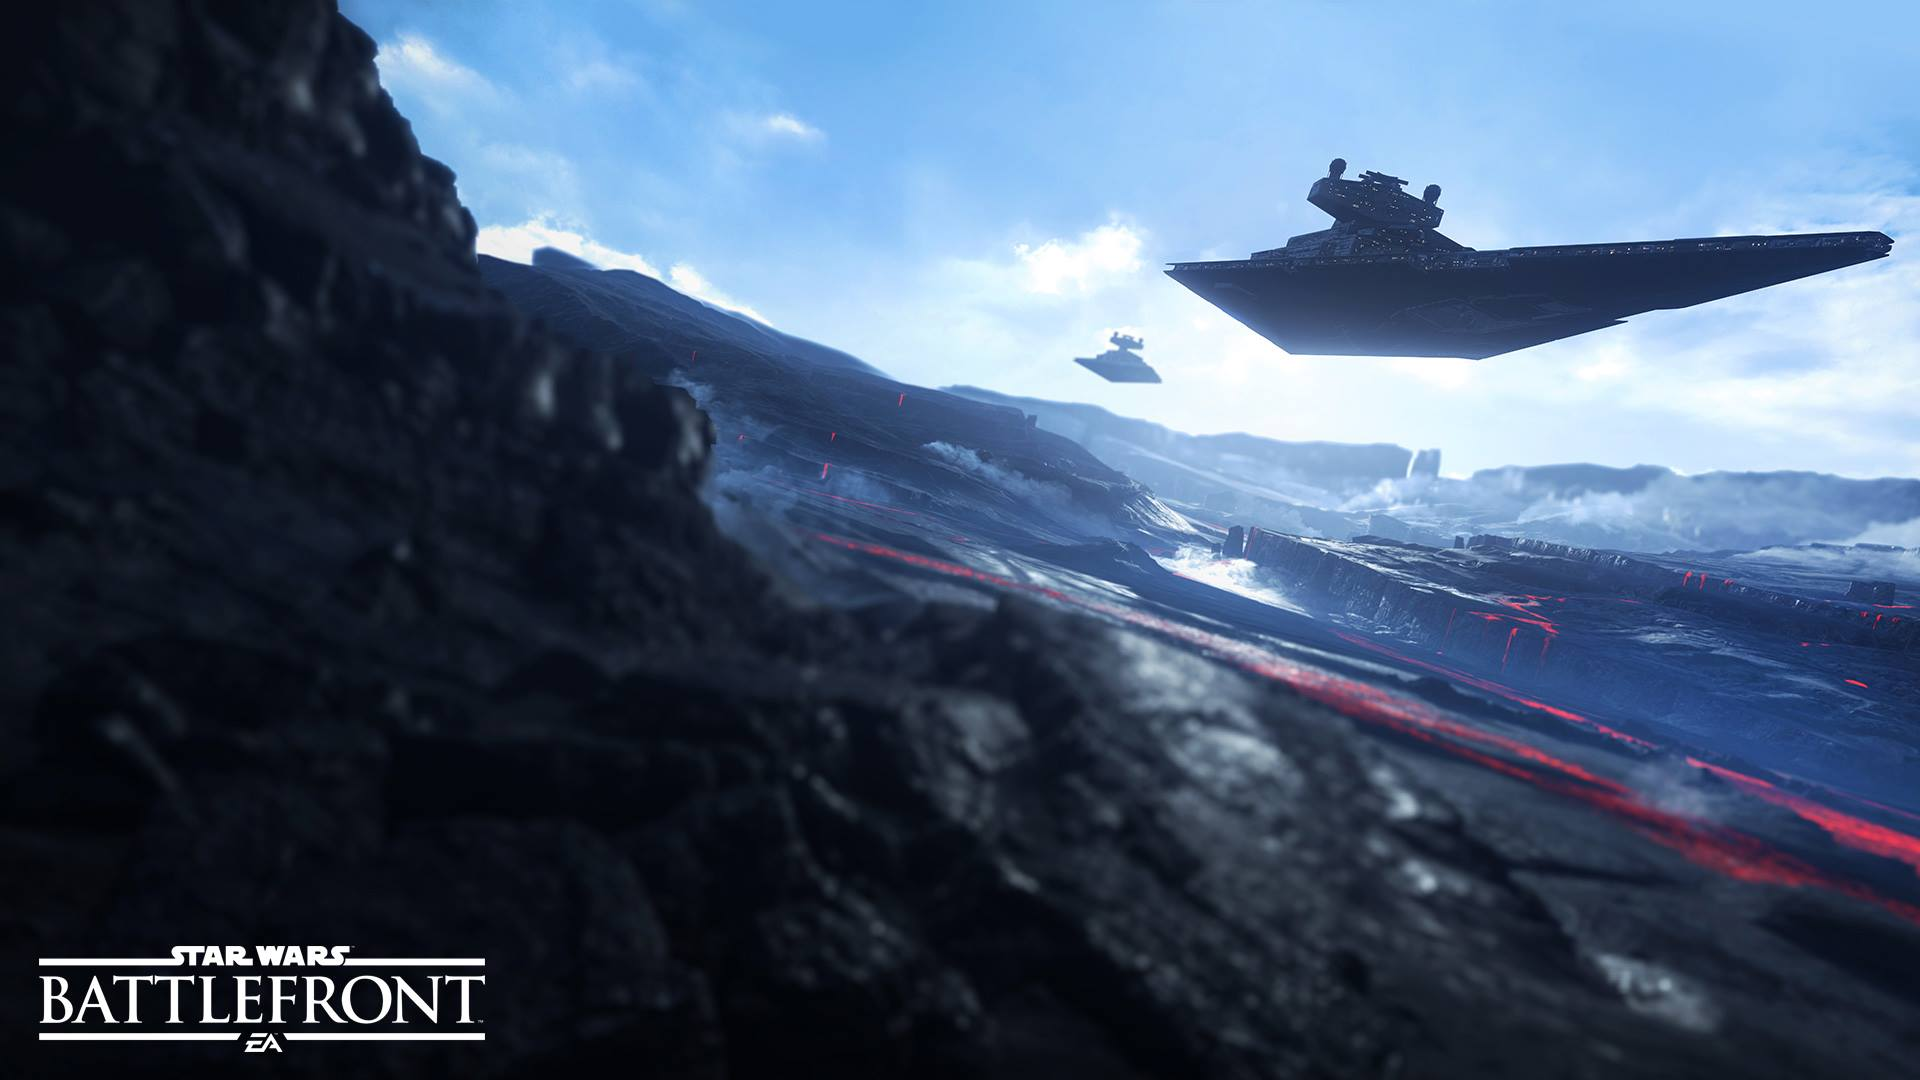 Star Wars Battlefront 3 Wallpapers: Star Wars Battlefront (2015) Full HD Wallpaper And